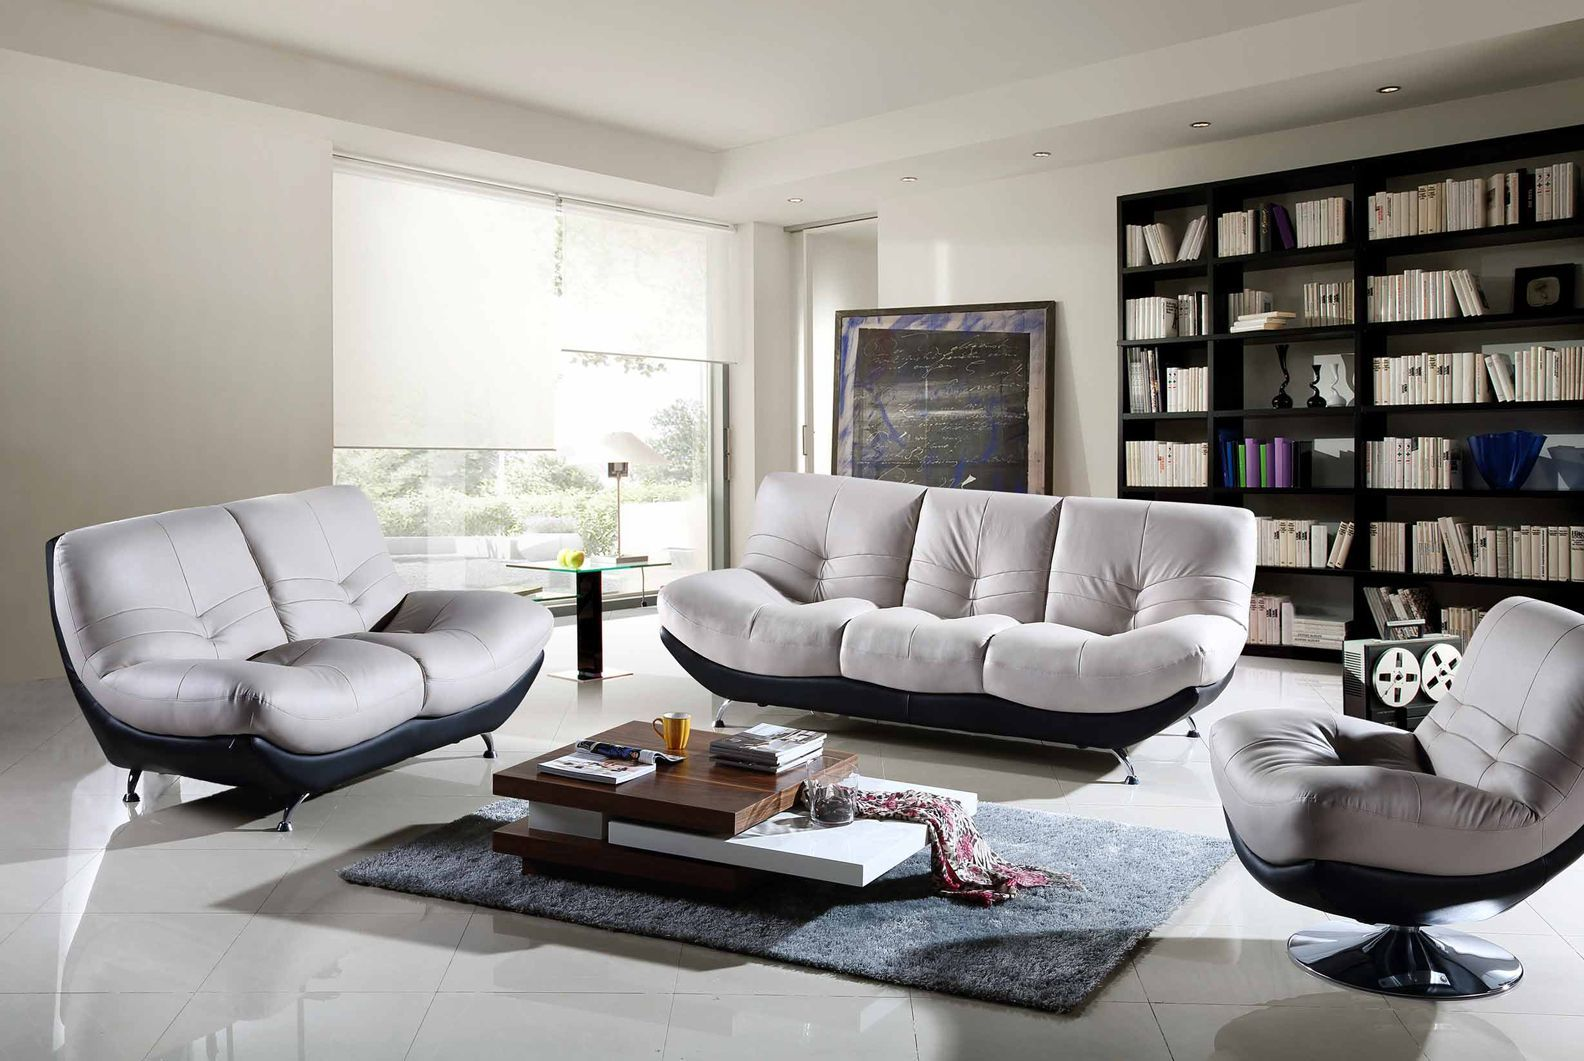 Cool good inexpensive modern furniture 56 for your hme designing inspiration with inexpensive modern furniture